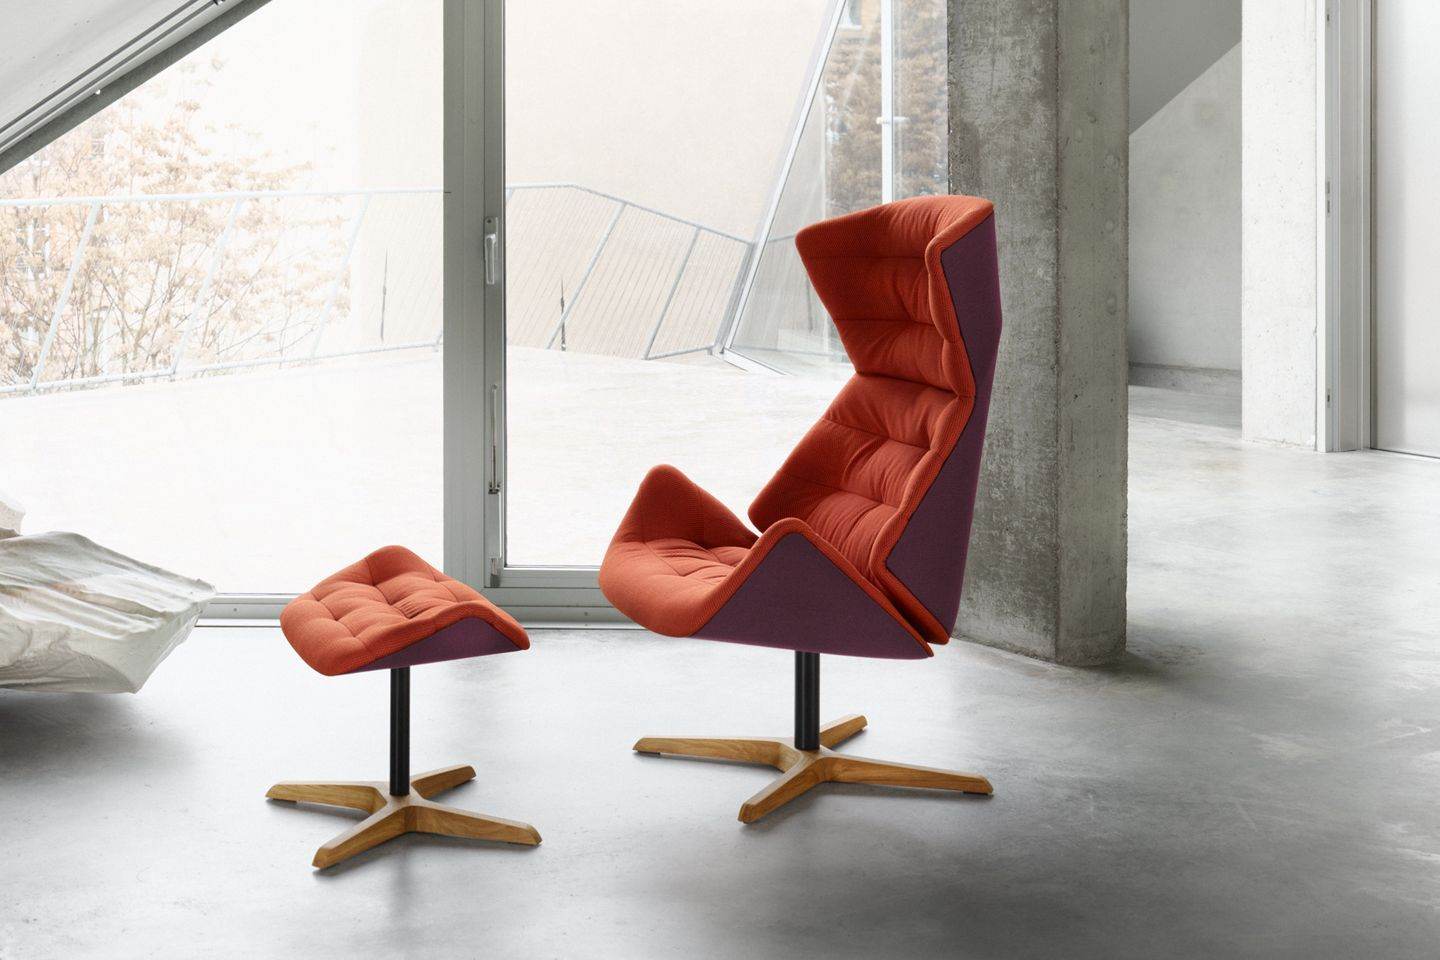 Lounge-sessel 808 Thonet Lounge Sessel 808 Tropic Design Formstelle Lounge Sessel